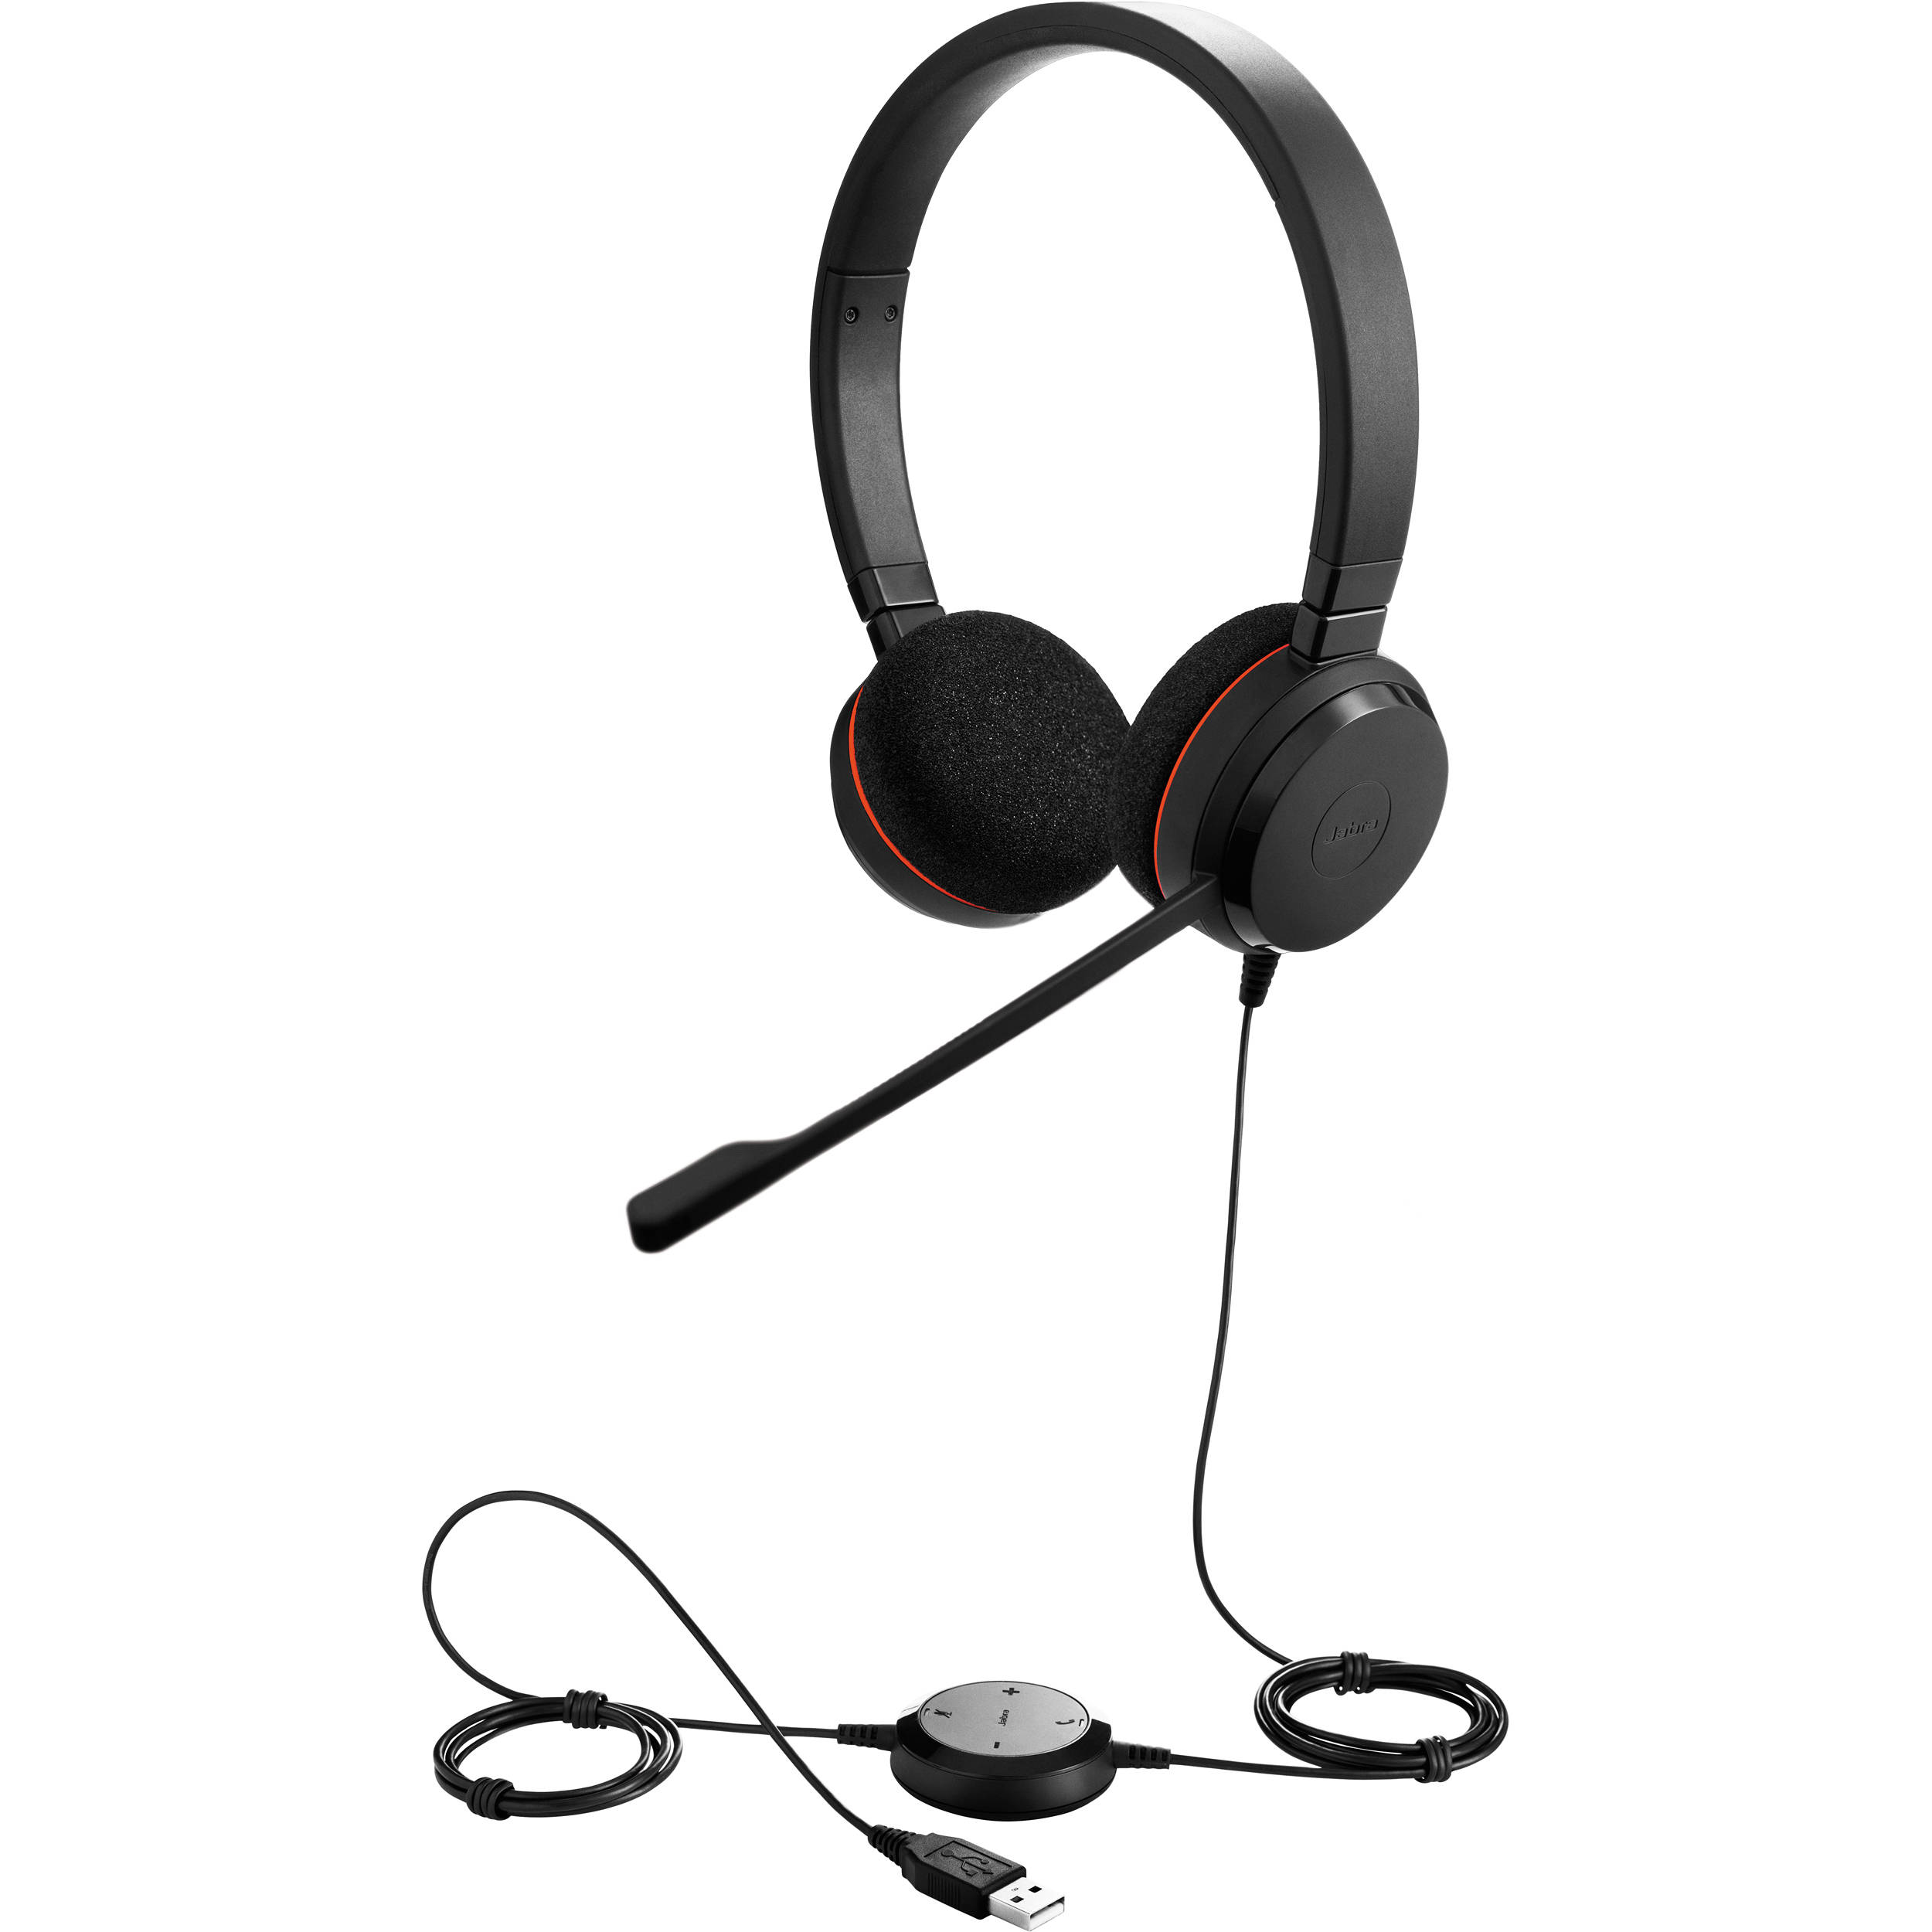 Casque EVOLVE 20 MS Stereo USB Headband, Noise canc 4999-823-109